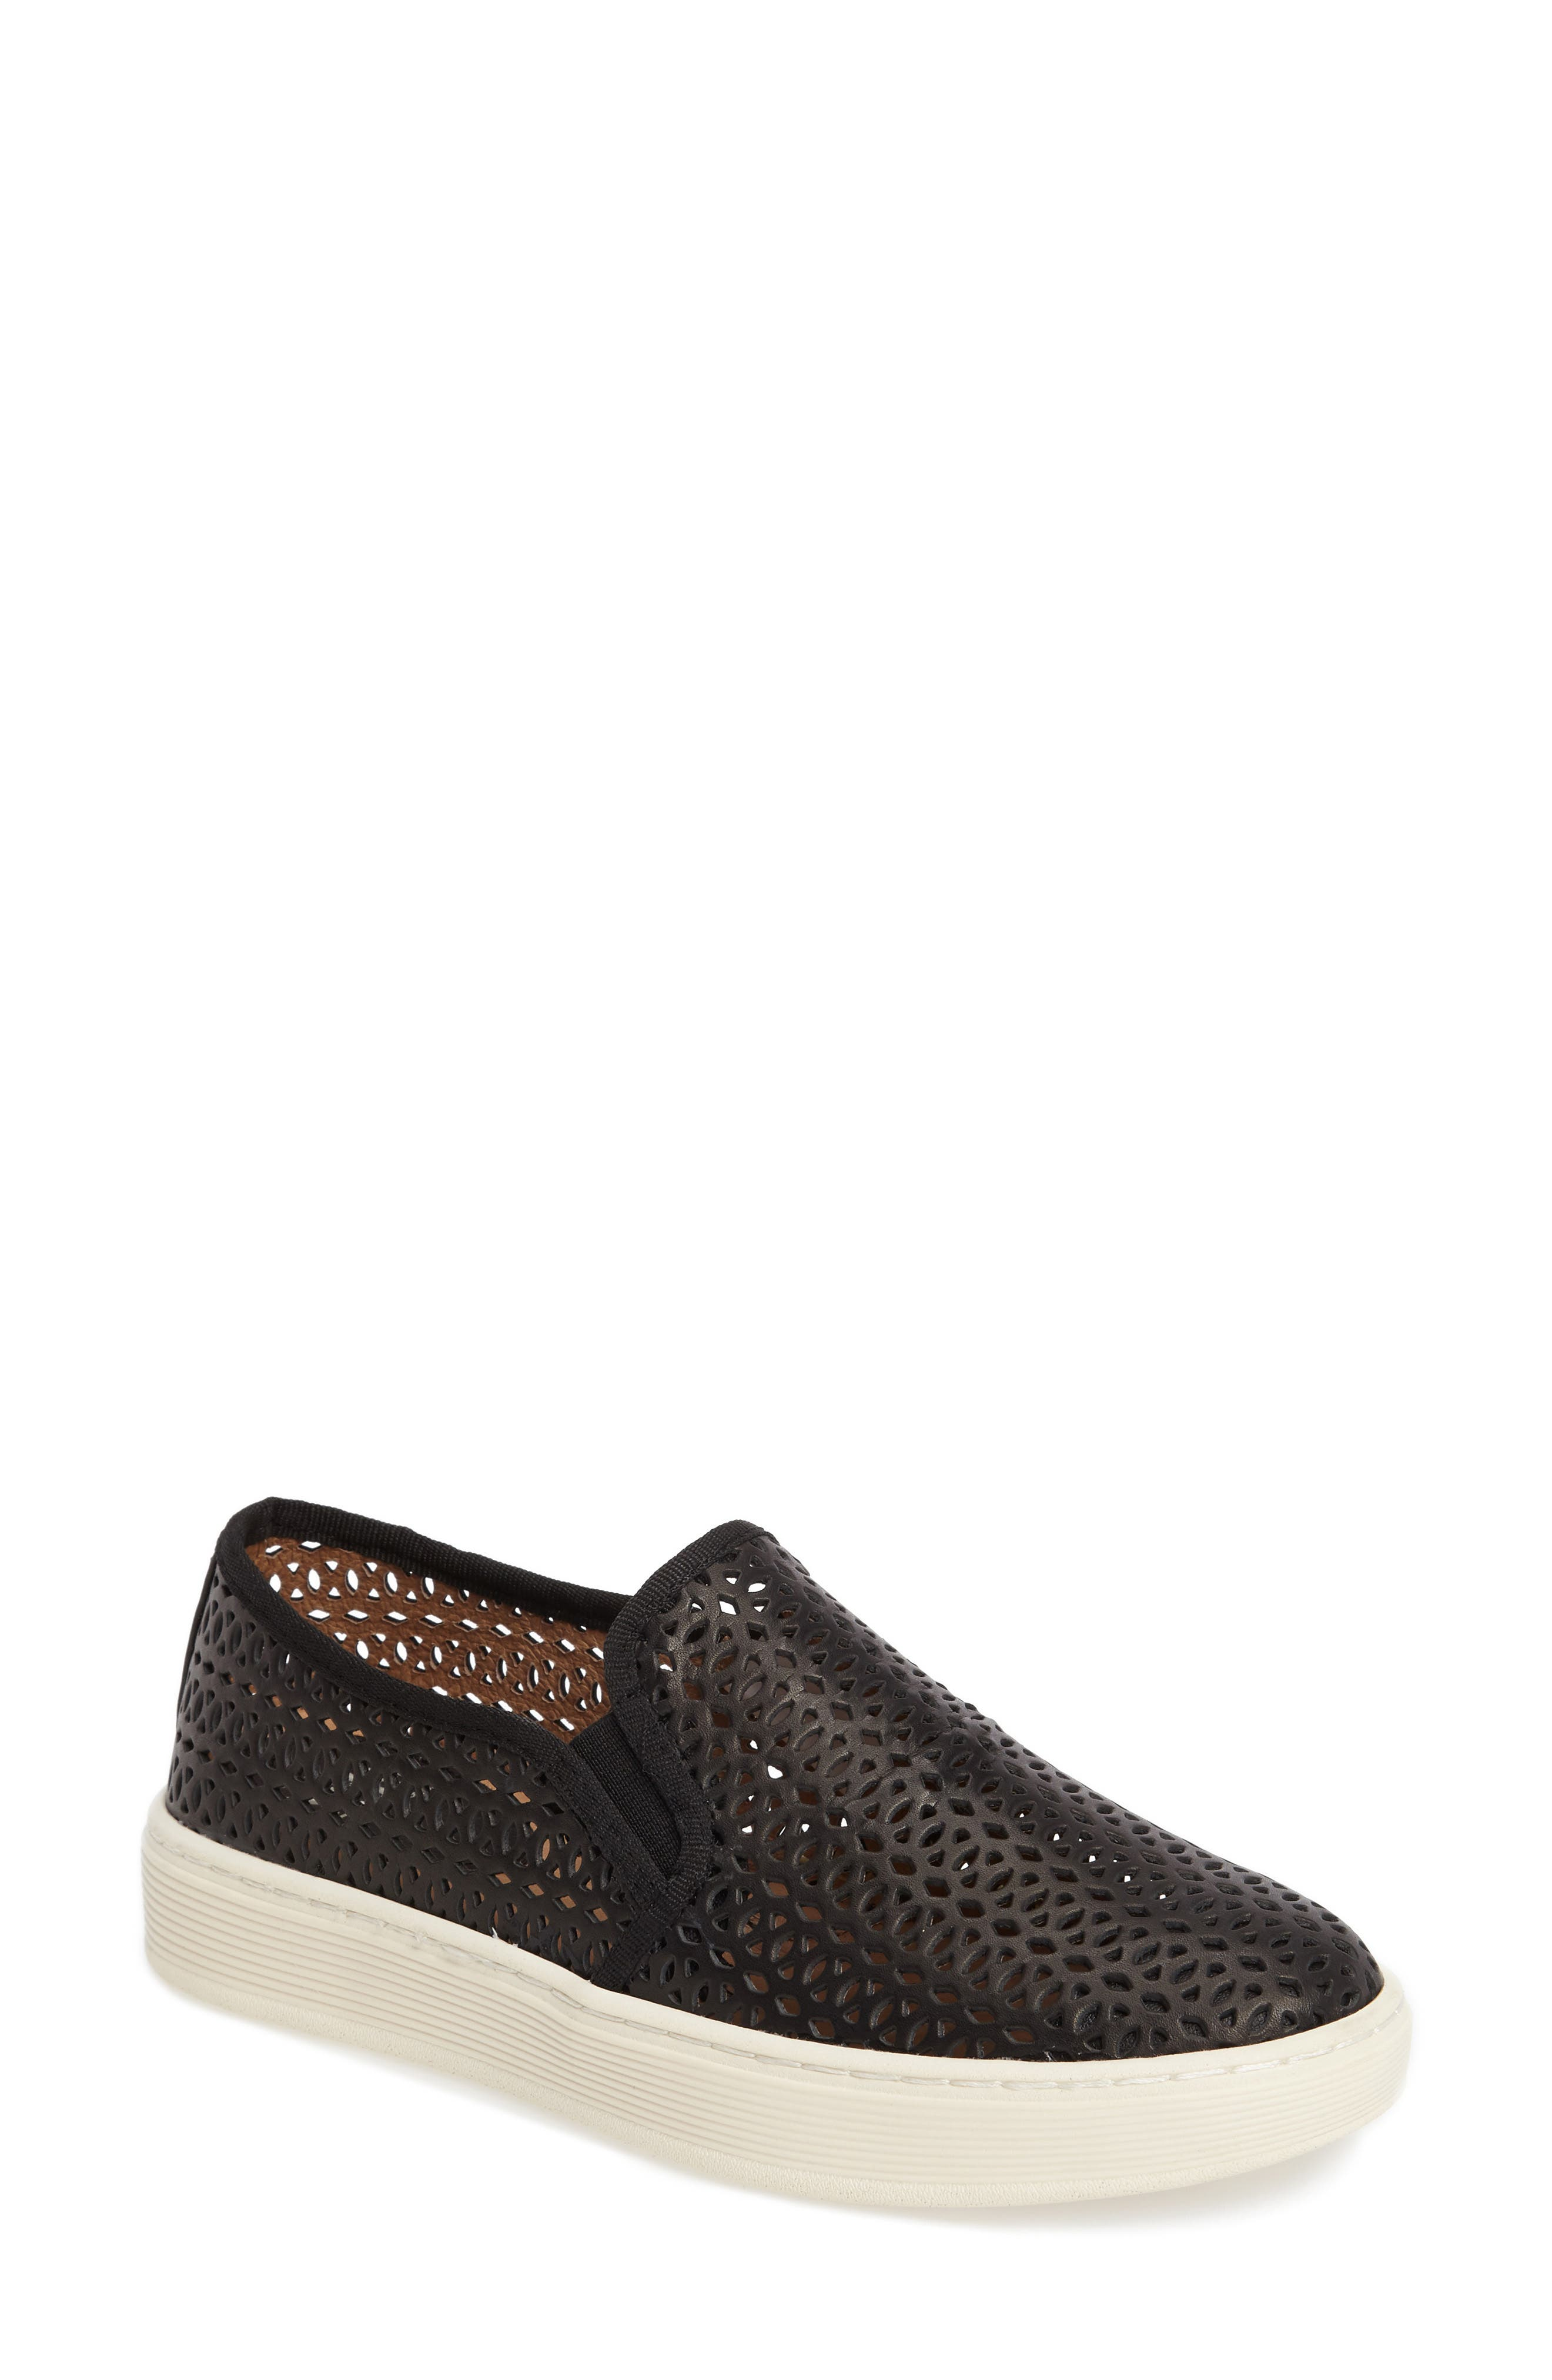 Somers II Slip-on Sneaker,                             Main thumbnail 1, color,                             Black Perforated Leather